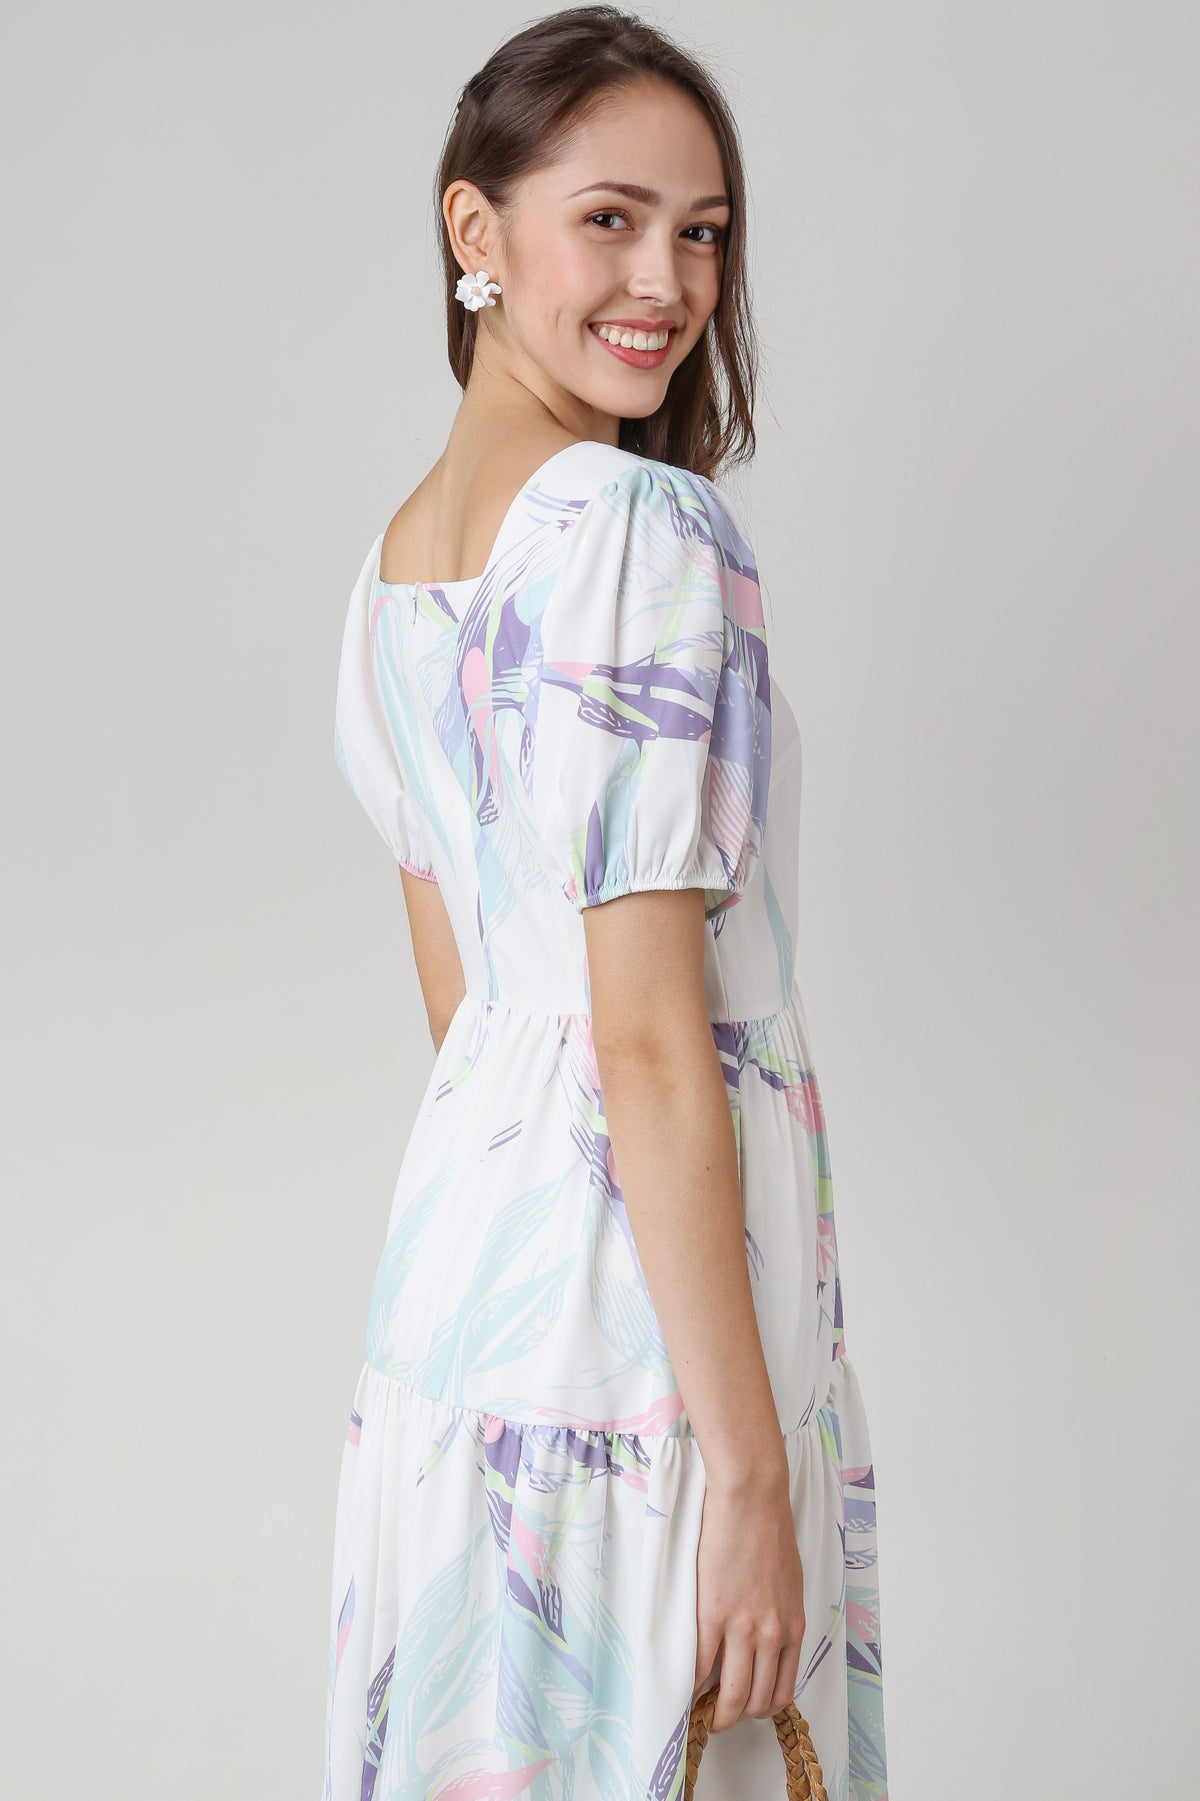 Dion Abstract Sleeved Dress in White